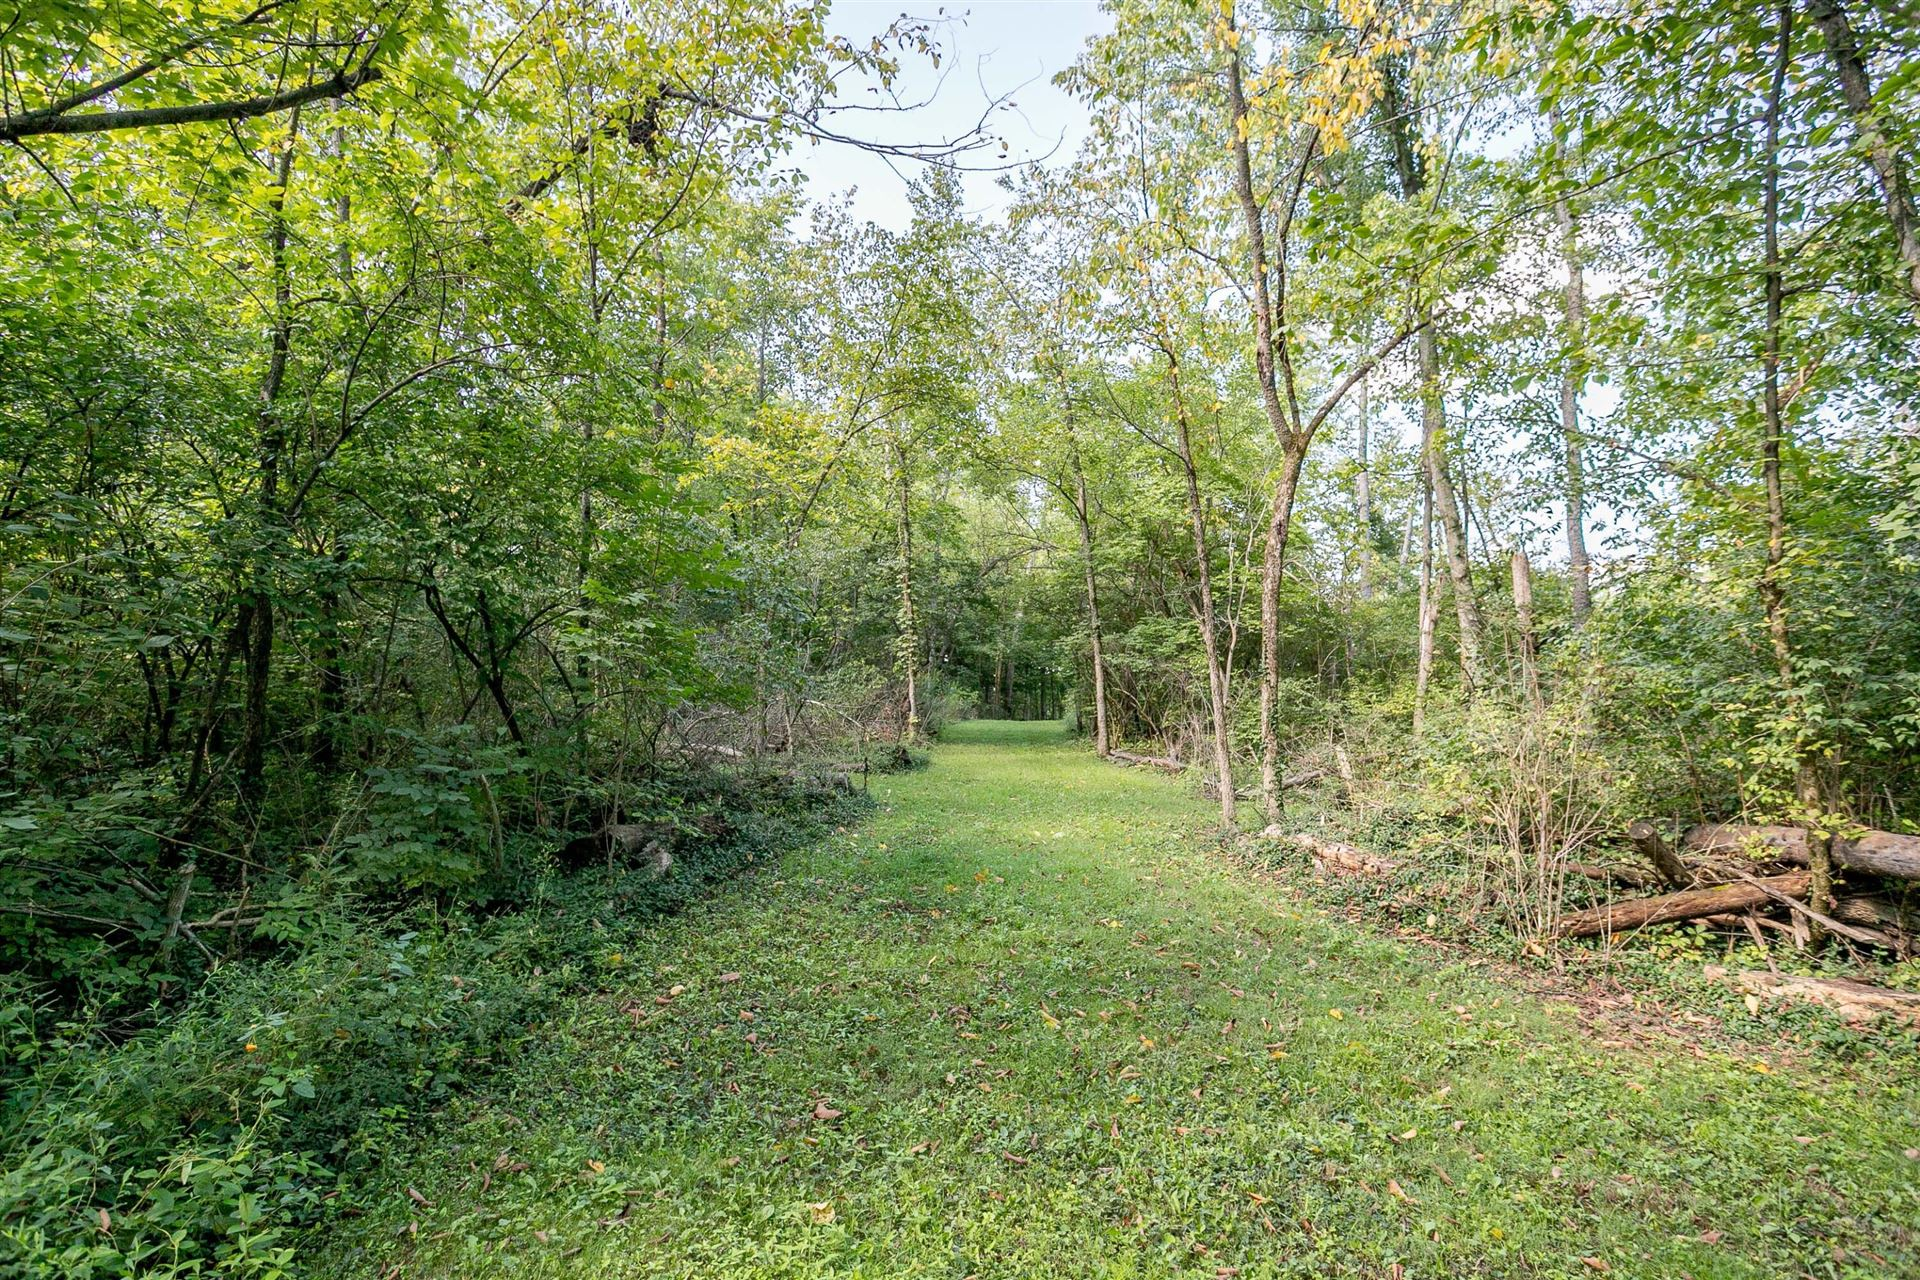 Photo of 0 Home Road, Delaware, OH 43015 (MLS # 221035880)